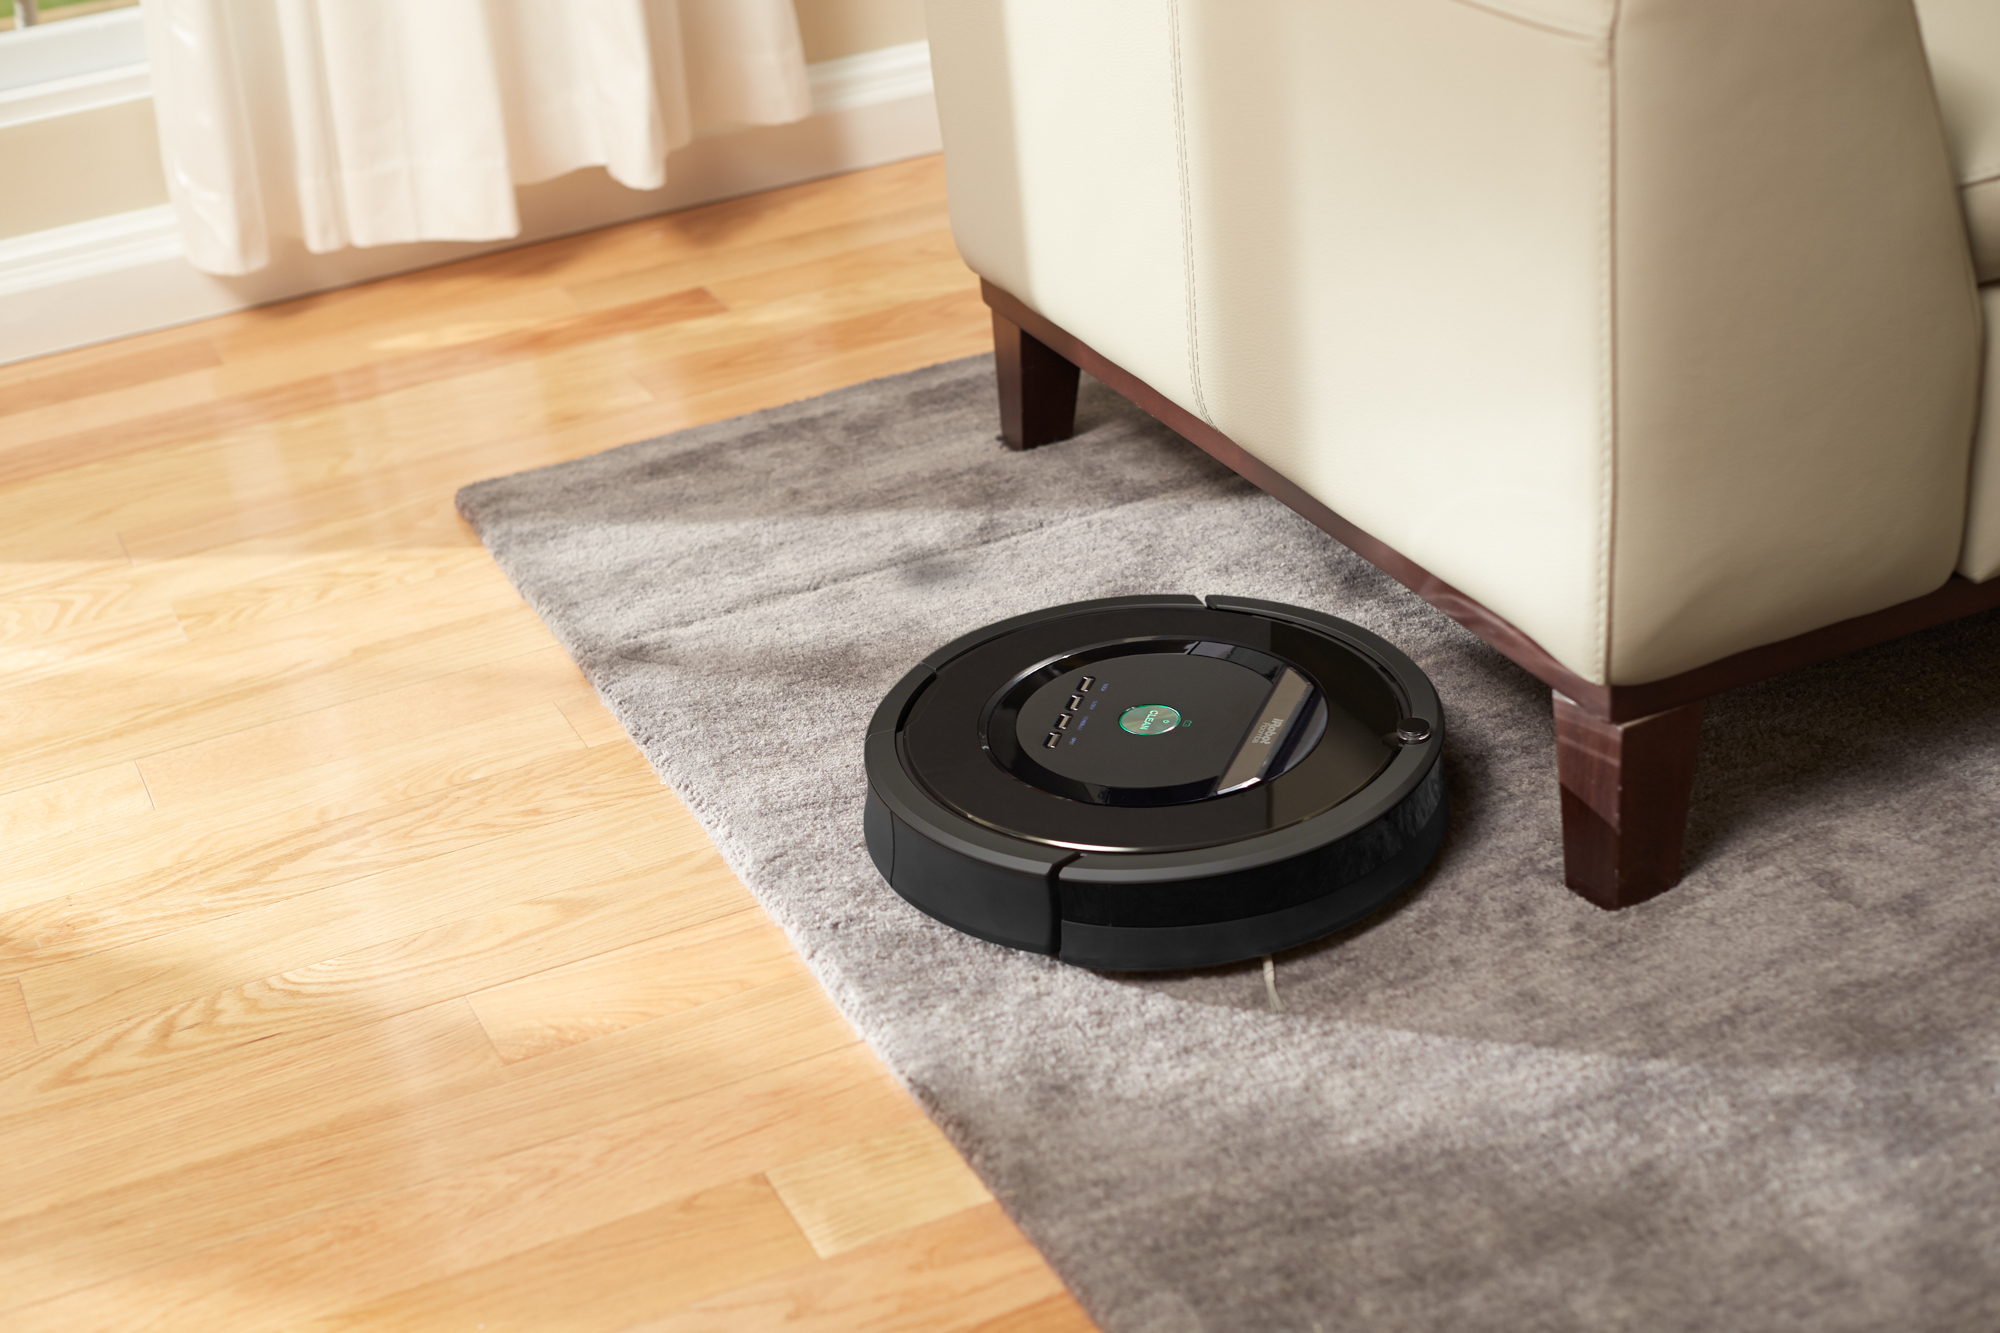 nos impressions sur le irobot roomba 880 un robot aspirateur pour la maison geeks and com 39. Black Bedroom Furniture Sets. Home Design Ideas